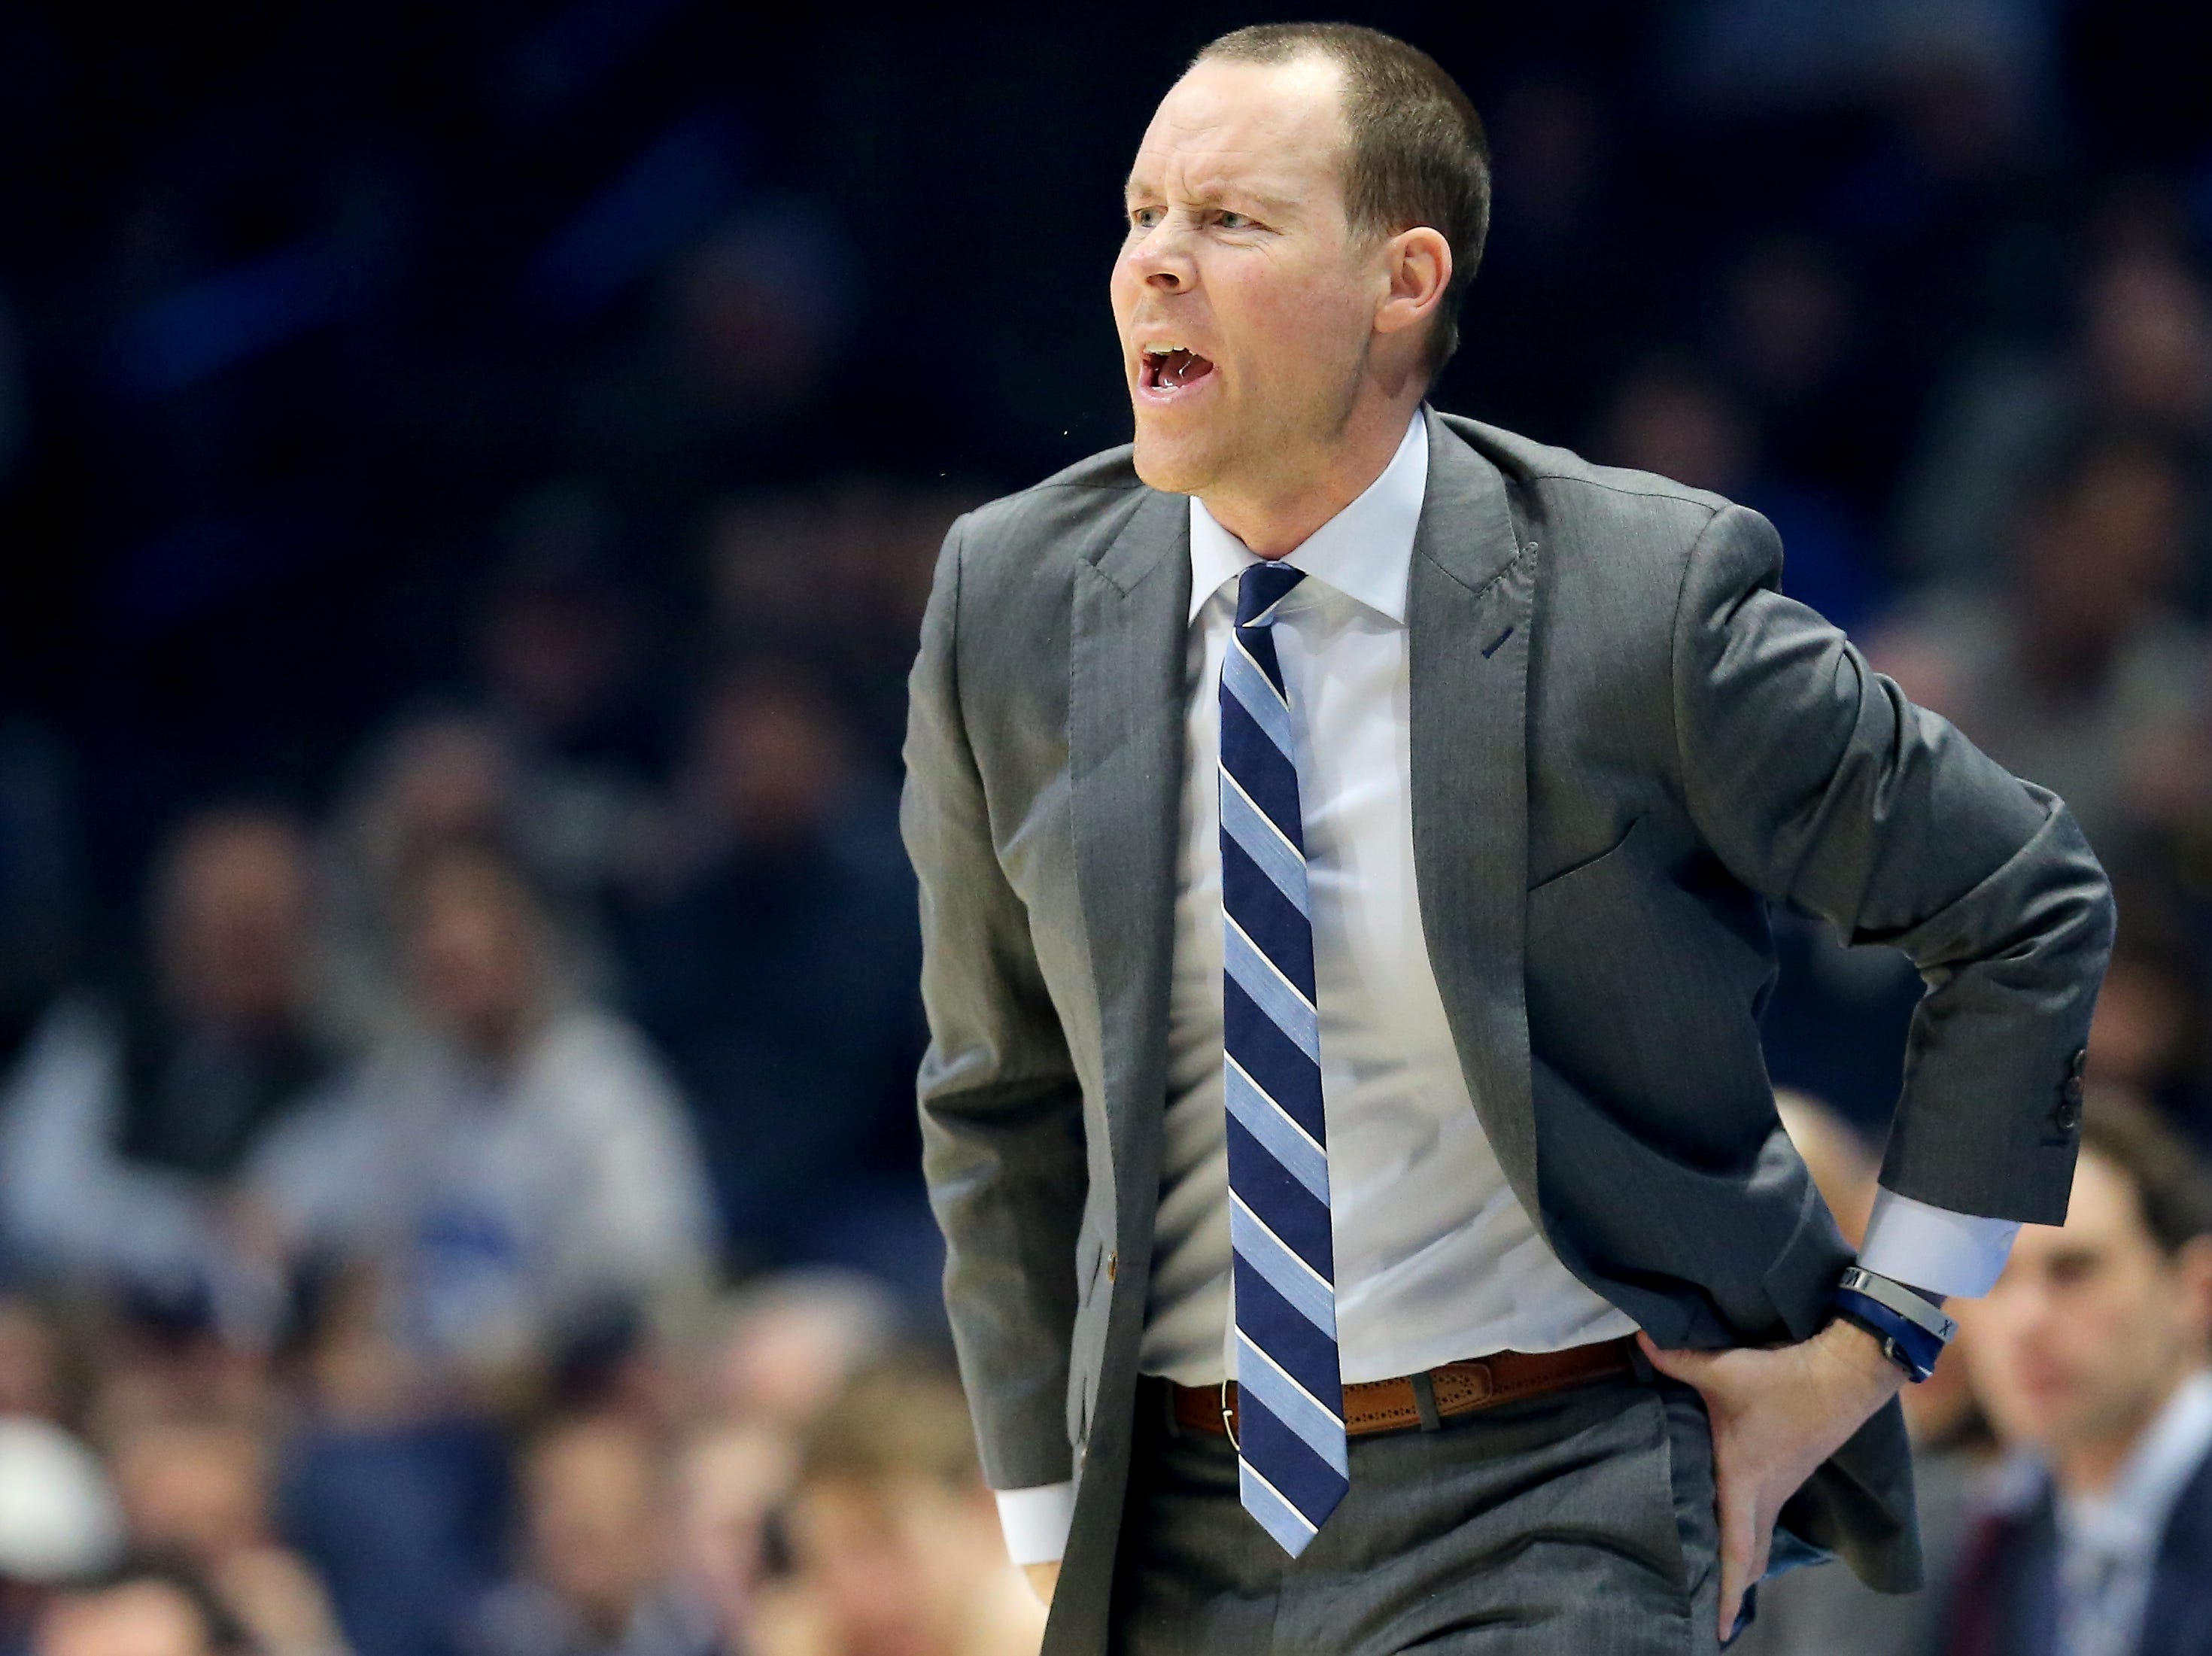 Xavier Musketeers head coach Travis Steele instructs the team in the first half of an NCAA college basketball game against the Butler Bulldogs, Sunday, Jan. 13, 2019, at Cintas Center in Cincinnati.